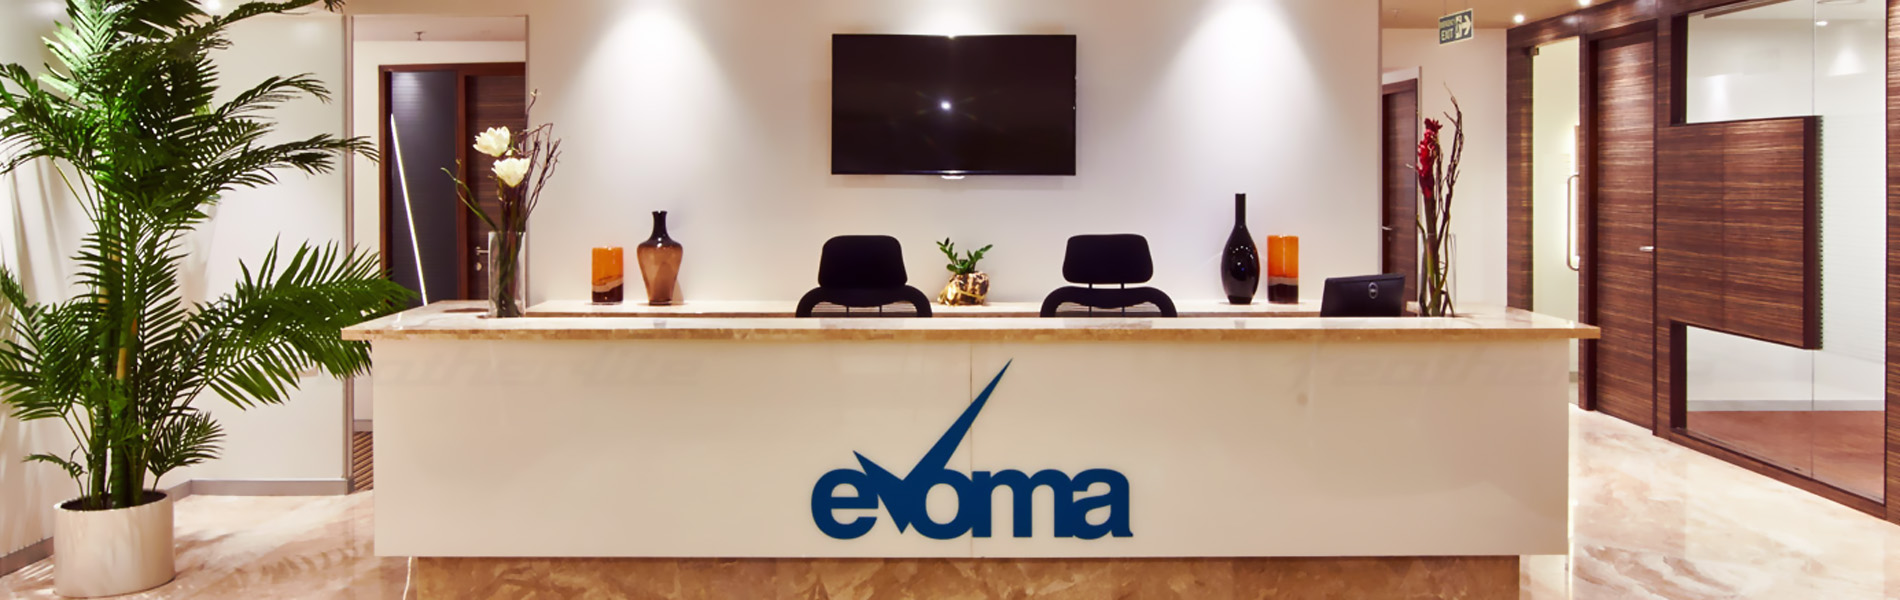 Evoma office space for rent in Marathahalli